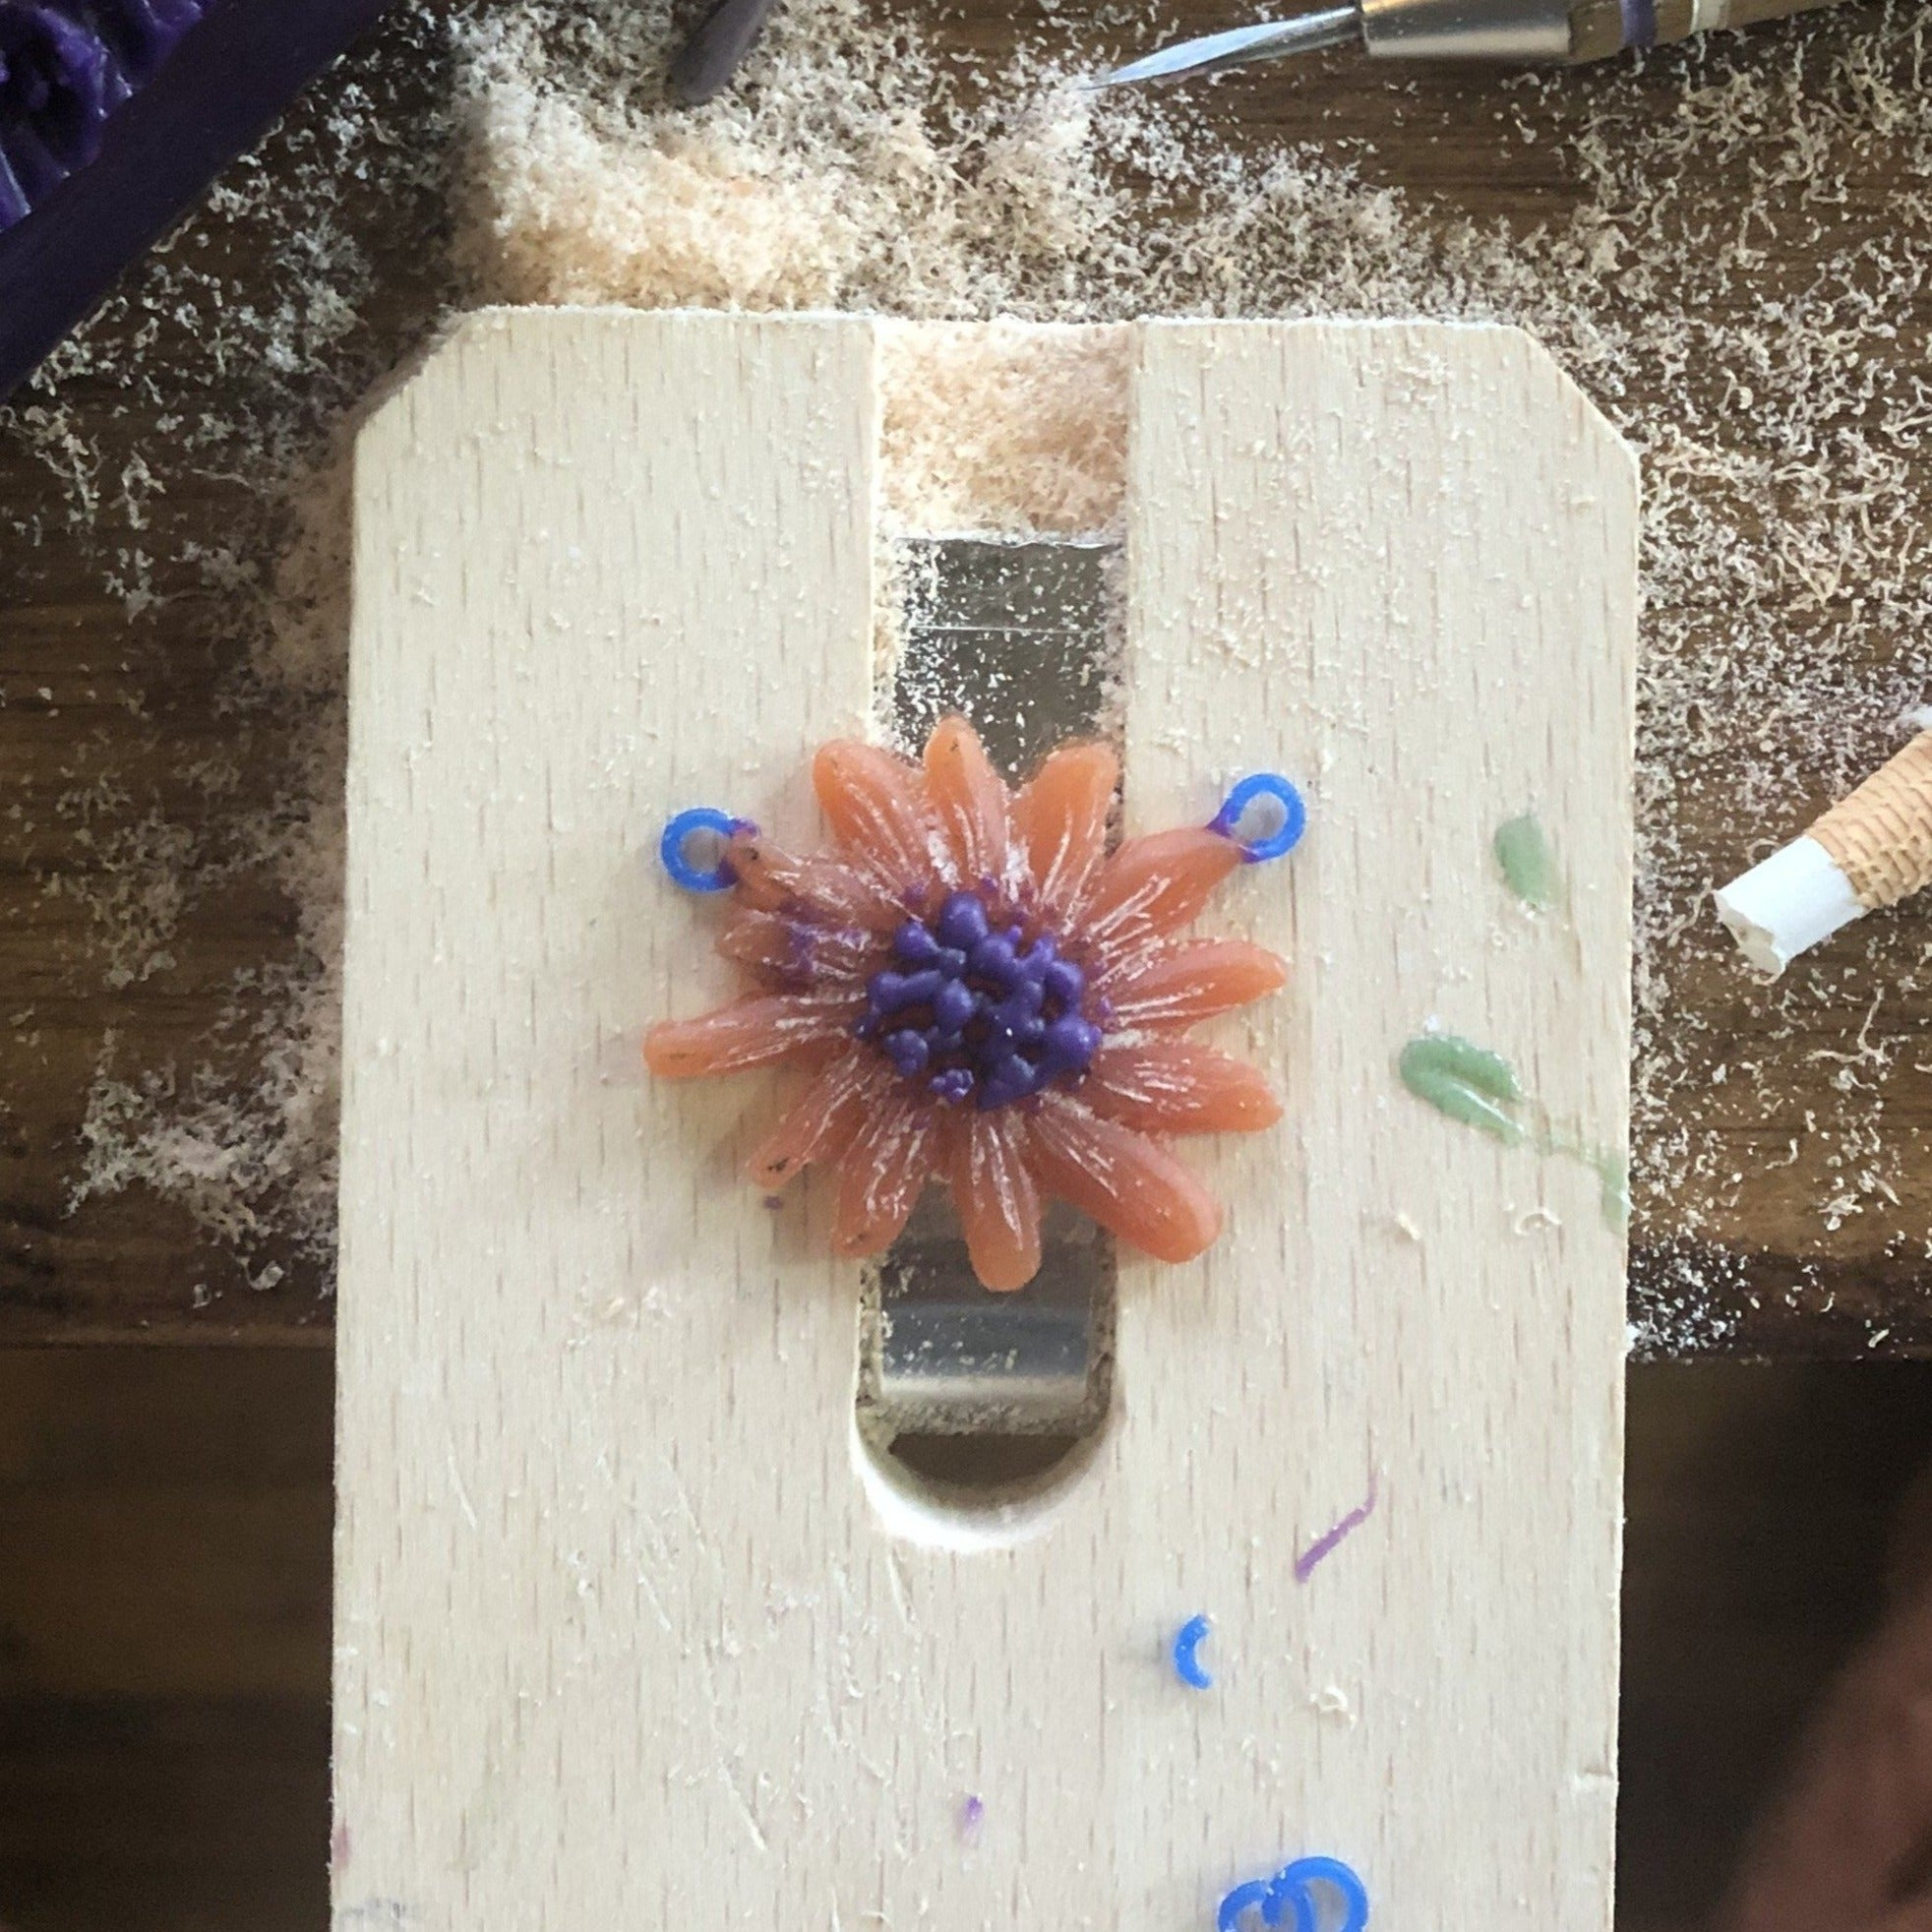 Lesson 4 | Wax Carving Class: Flower Pendant